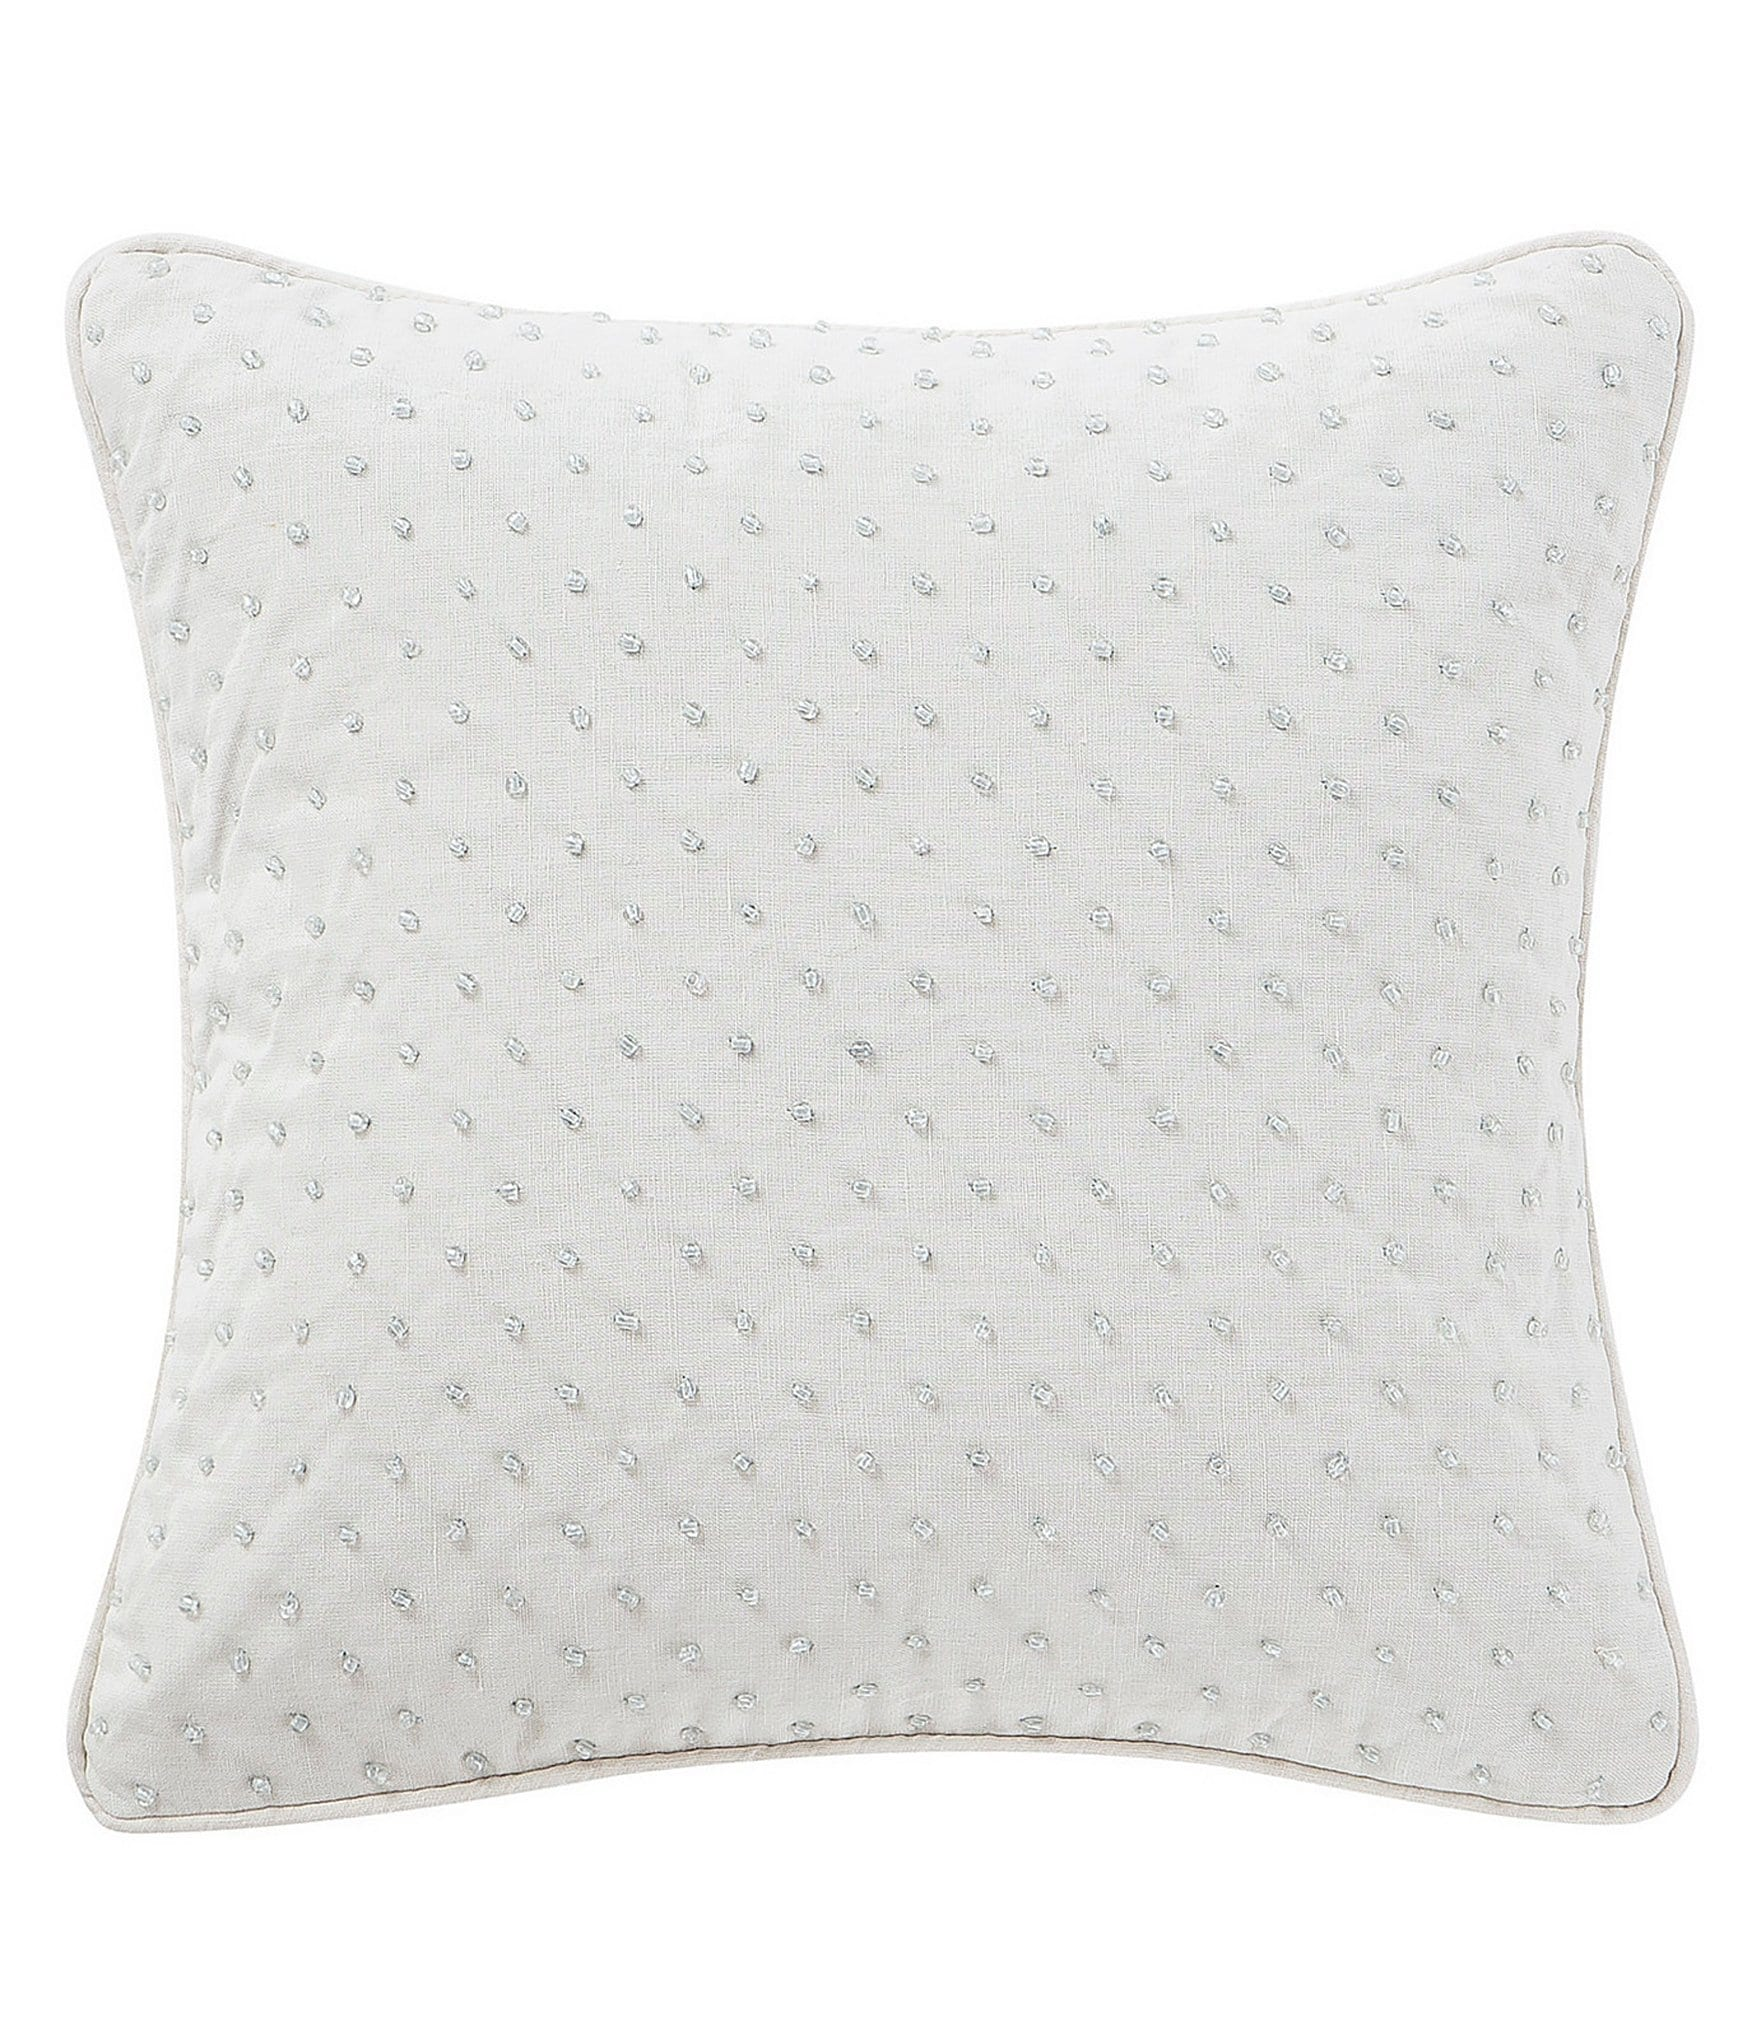 pillows en pale the shape polyester throw products inner holds cushions pillow ullkaktus gives and its body ikea art pink cm filling textiles cushion rugs soft gb support your